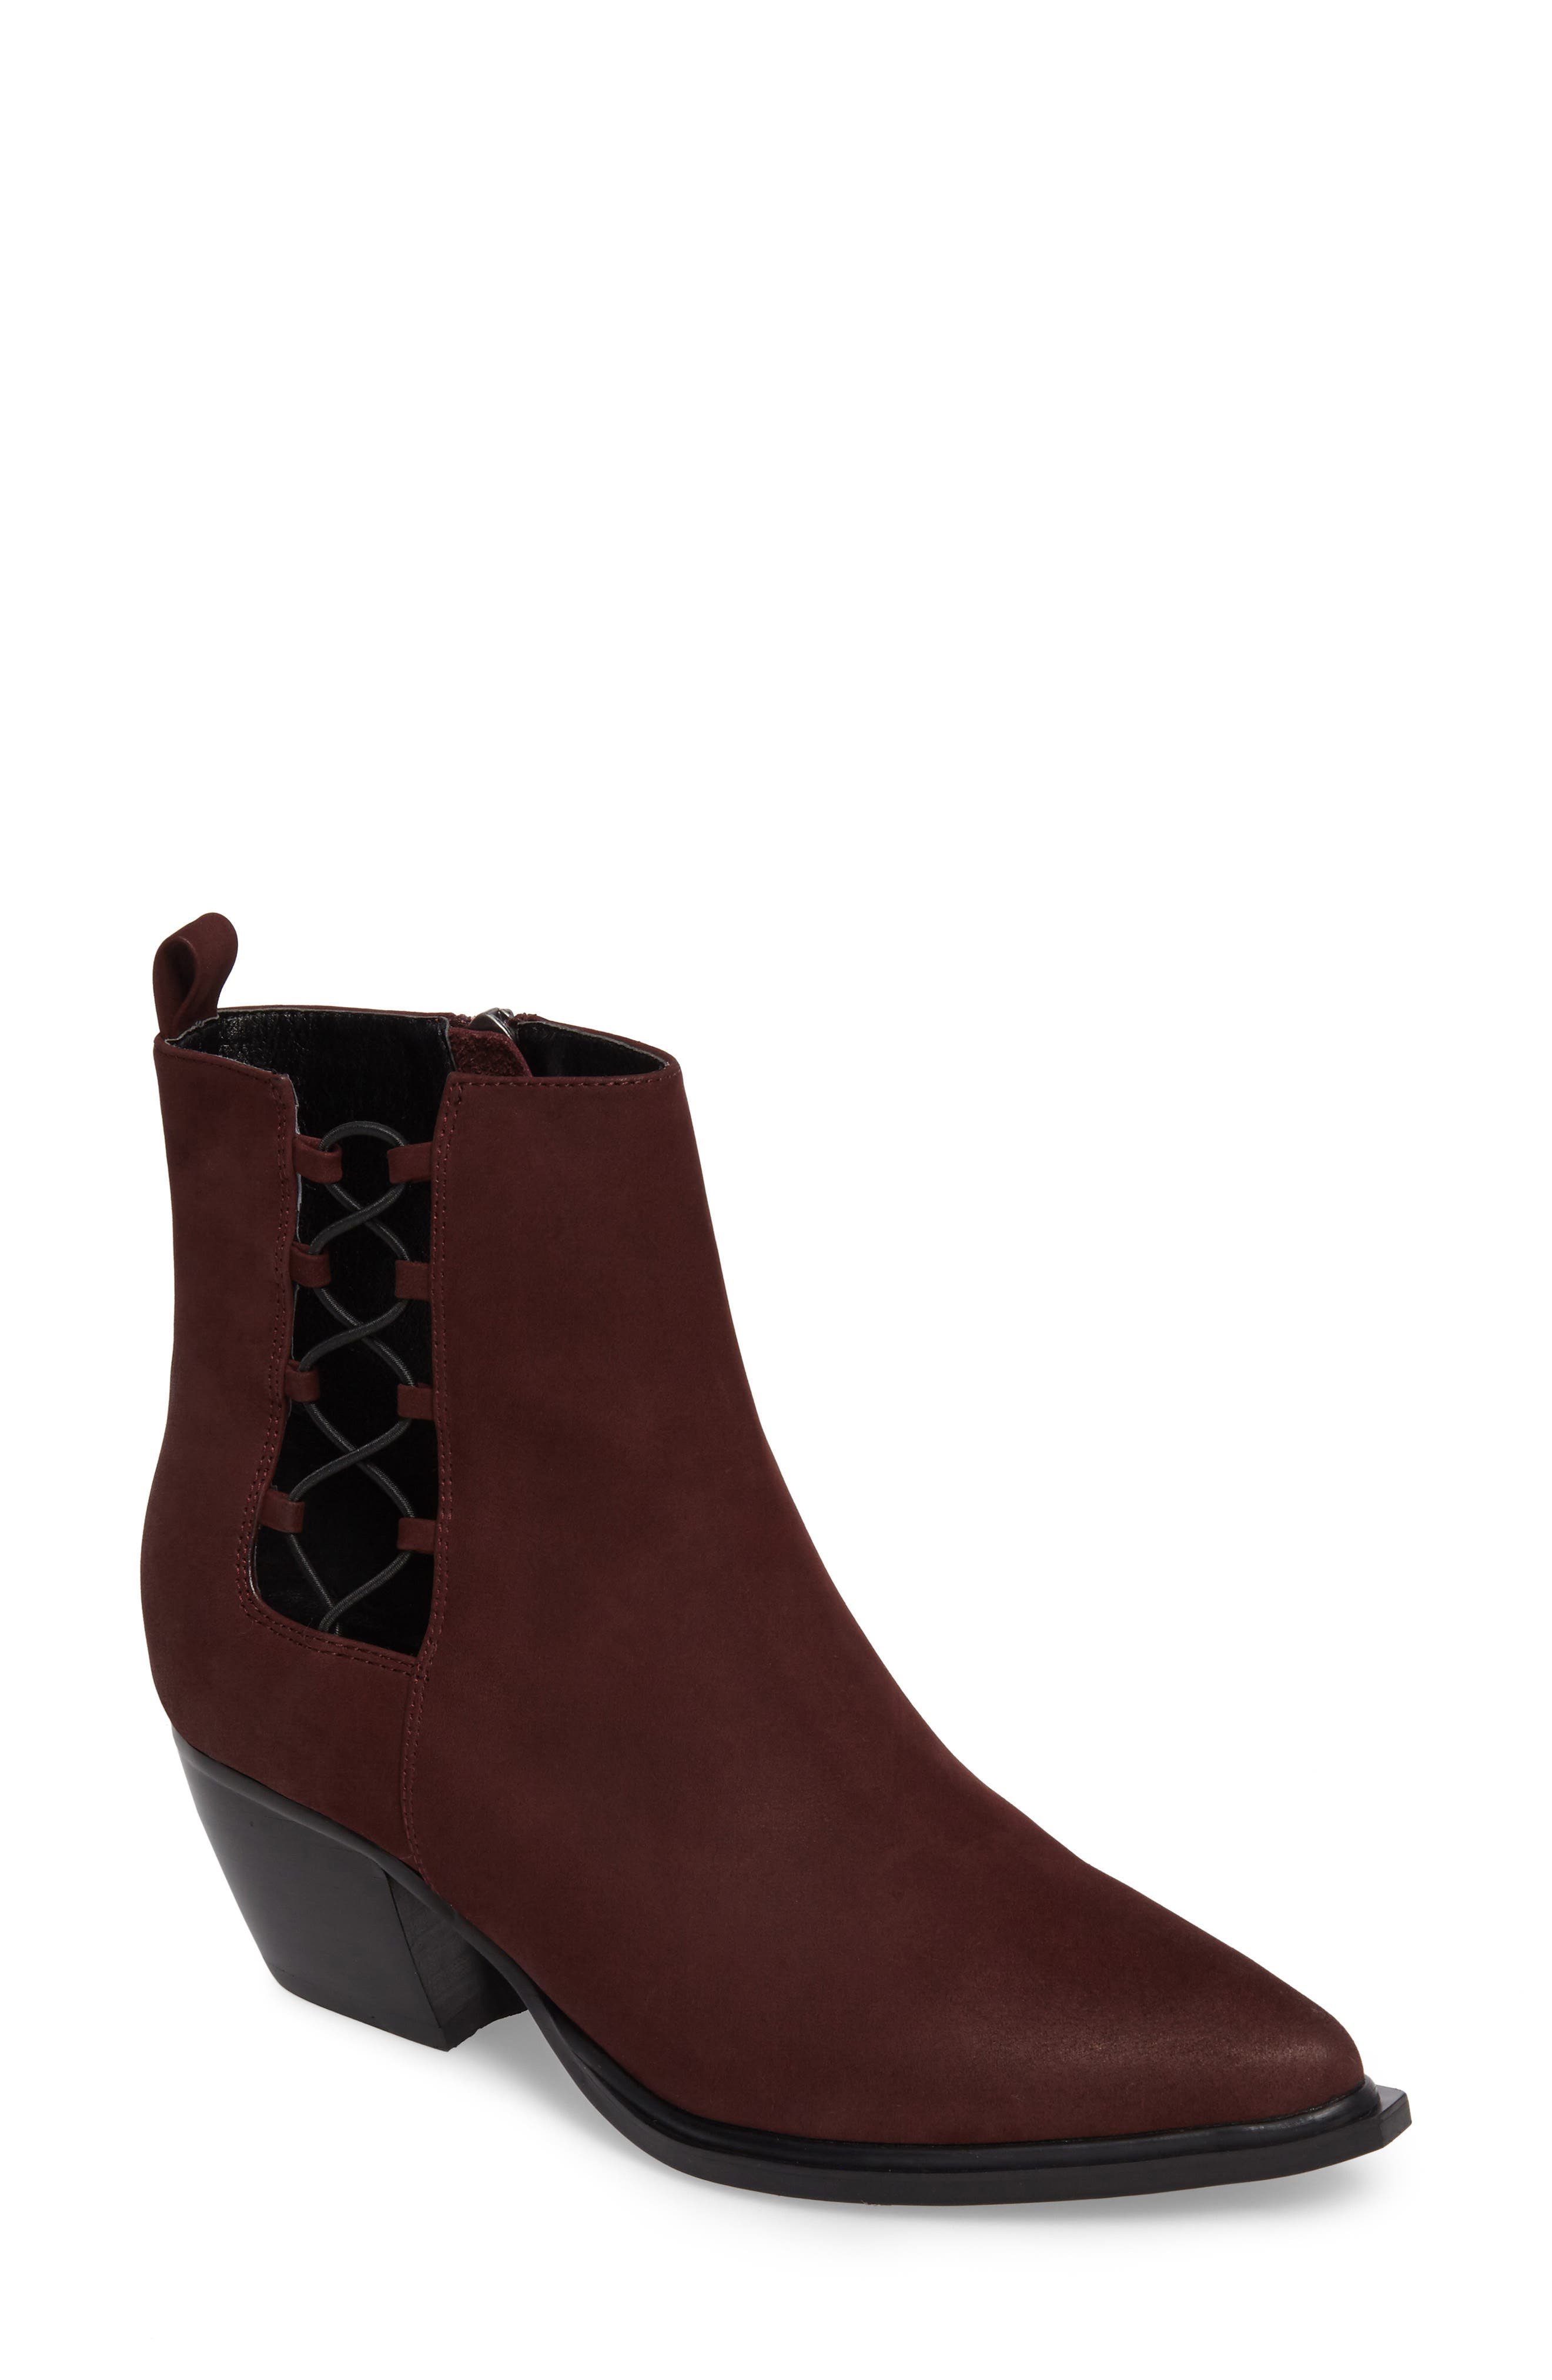 Hackney Corset Bootie,                         Main,                         color, WINE LEATHER